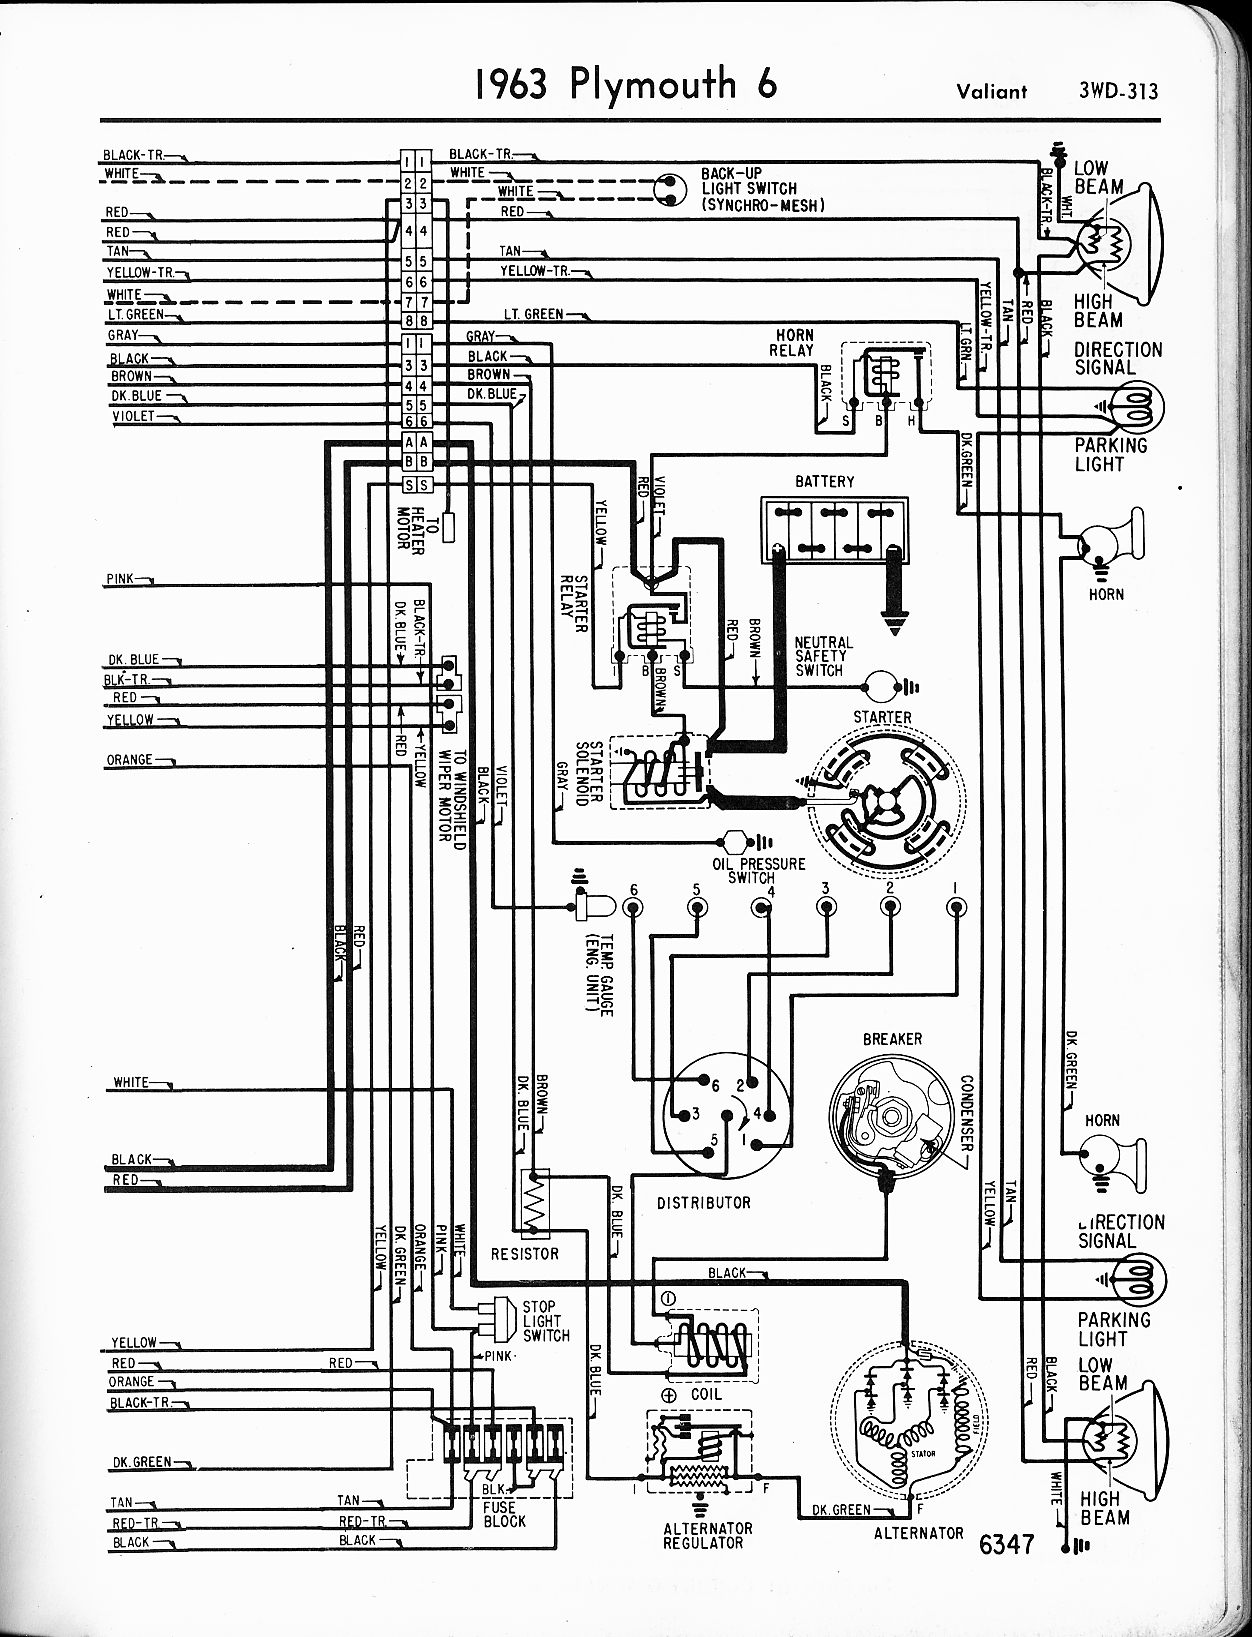 1969 barracuda wiring diagram electrical wiring diagrams rh cytrus co Basic Headlight Wiring Diagram Distributor Wiring Diagram